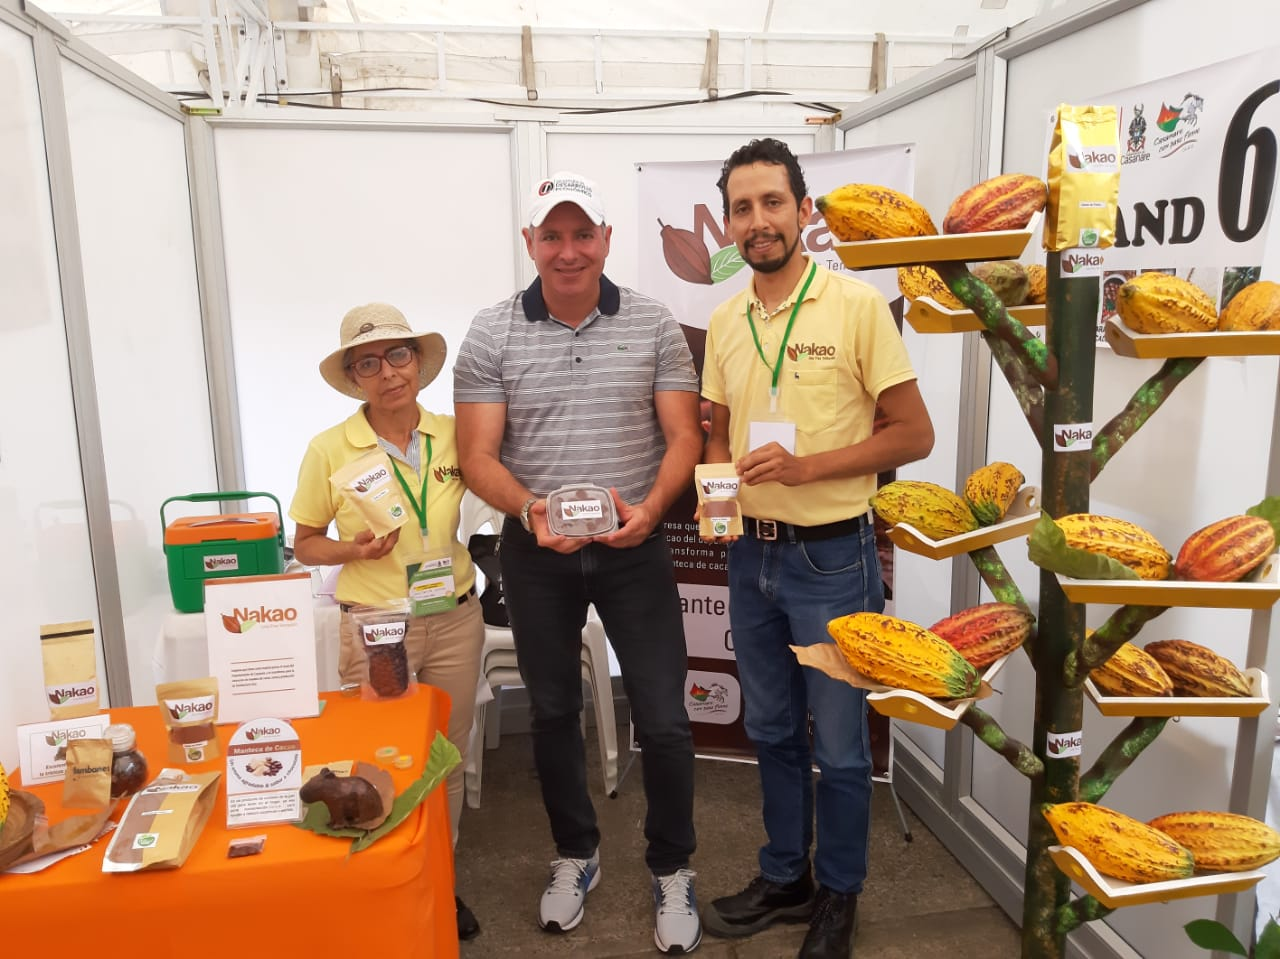 Nakao. Stand con producto